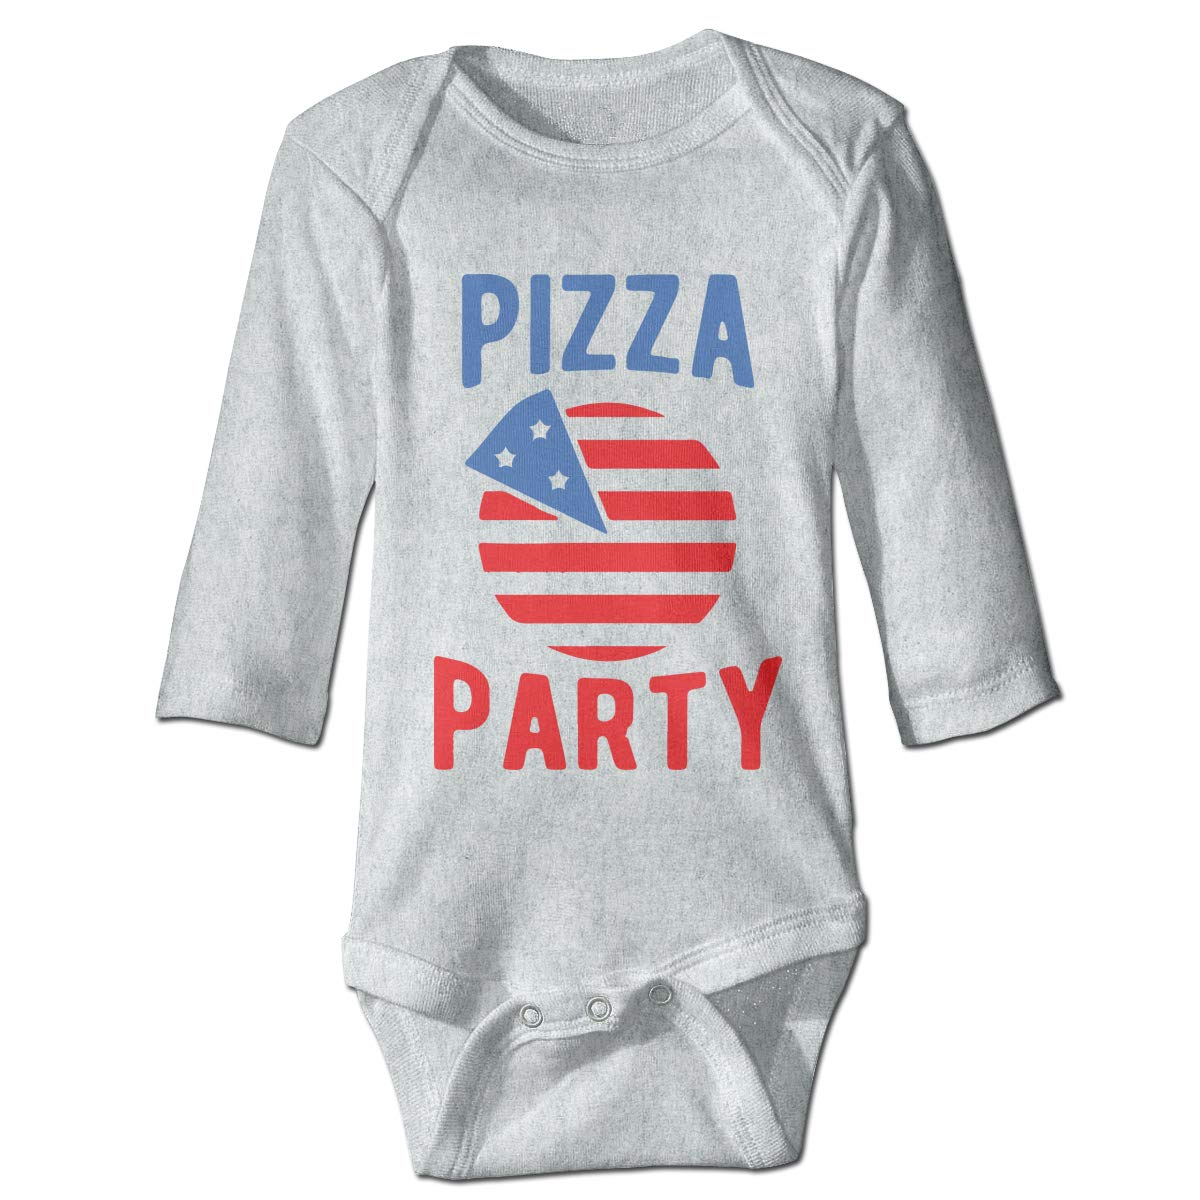 A14UBP Infant Baby Boys Girls Long Sleeve Climb Romper Pizza Party 4th of July Unisex Button Playsuit Outfit Clothes